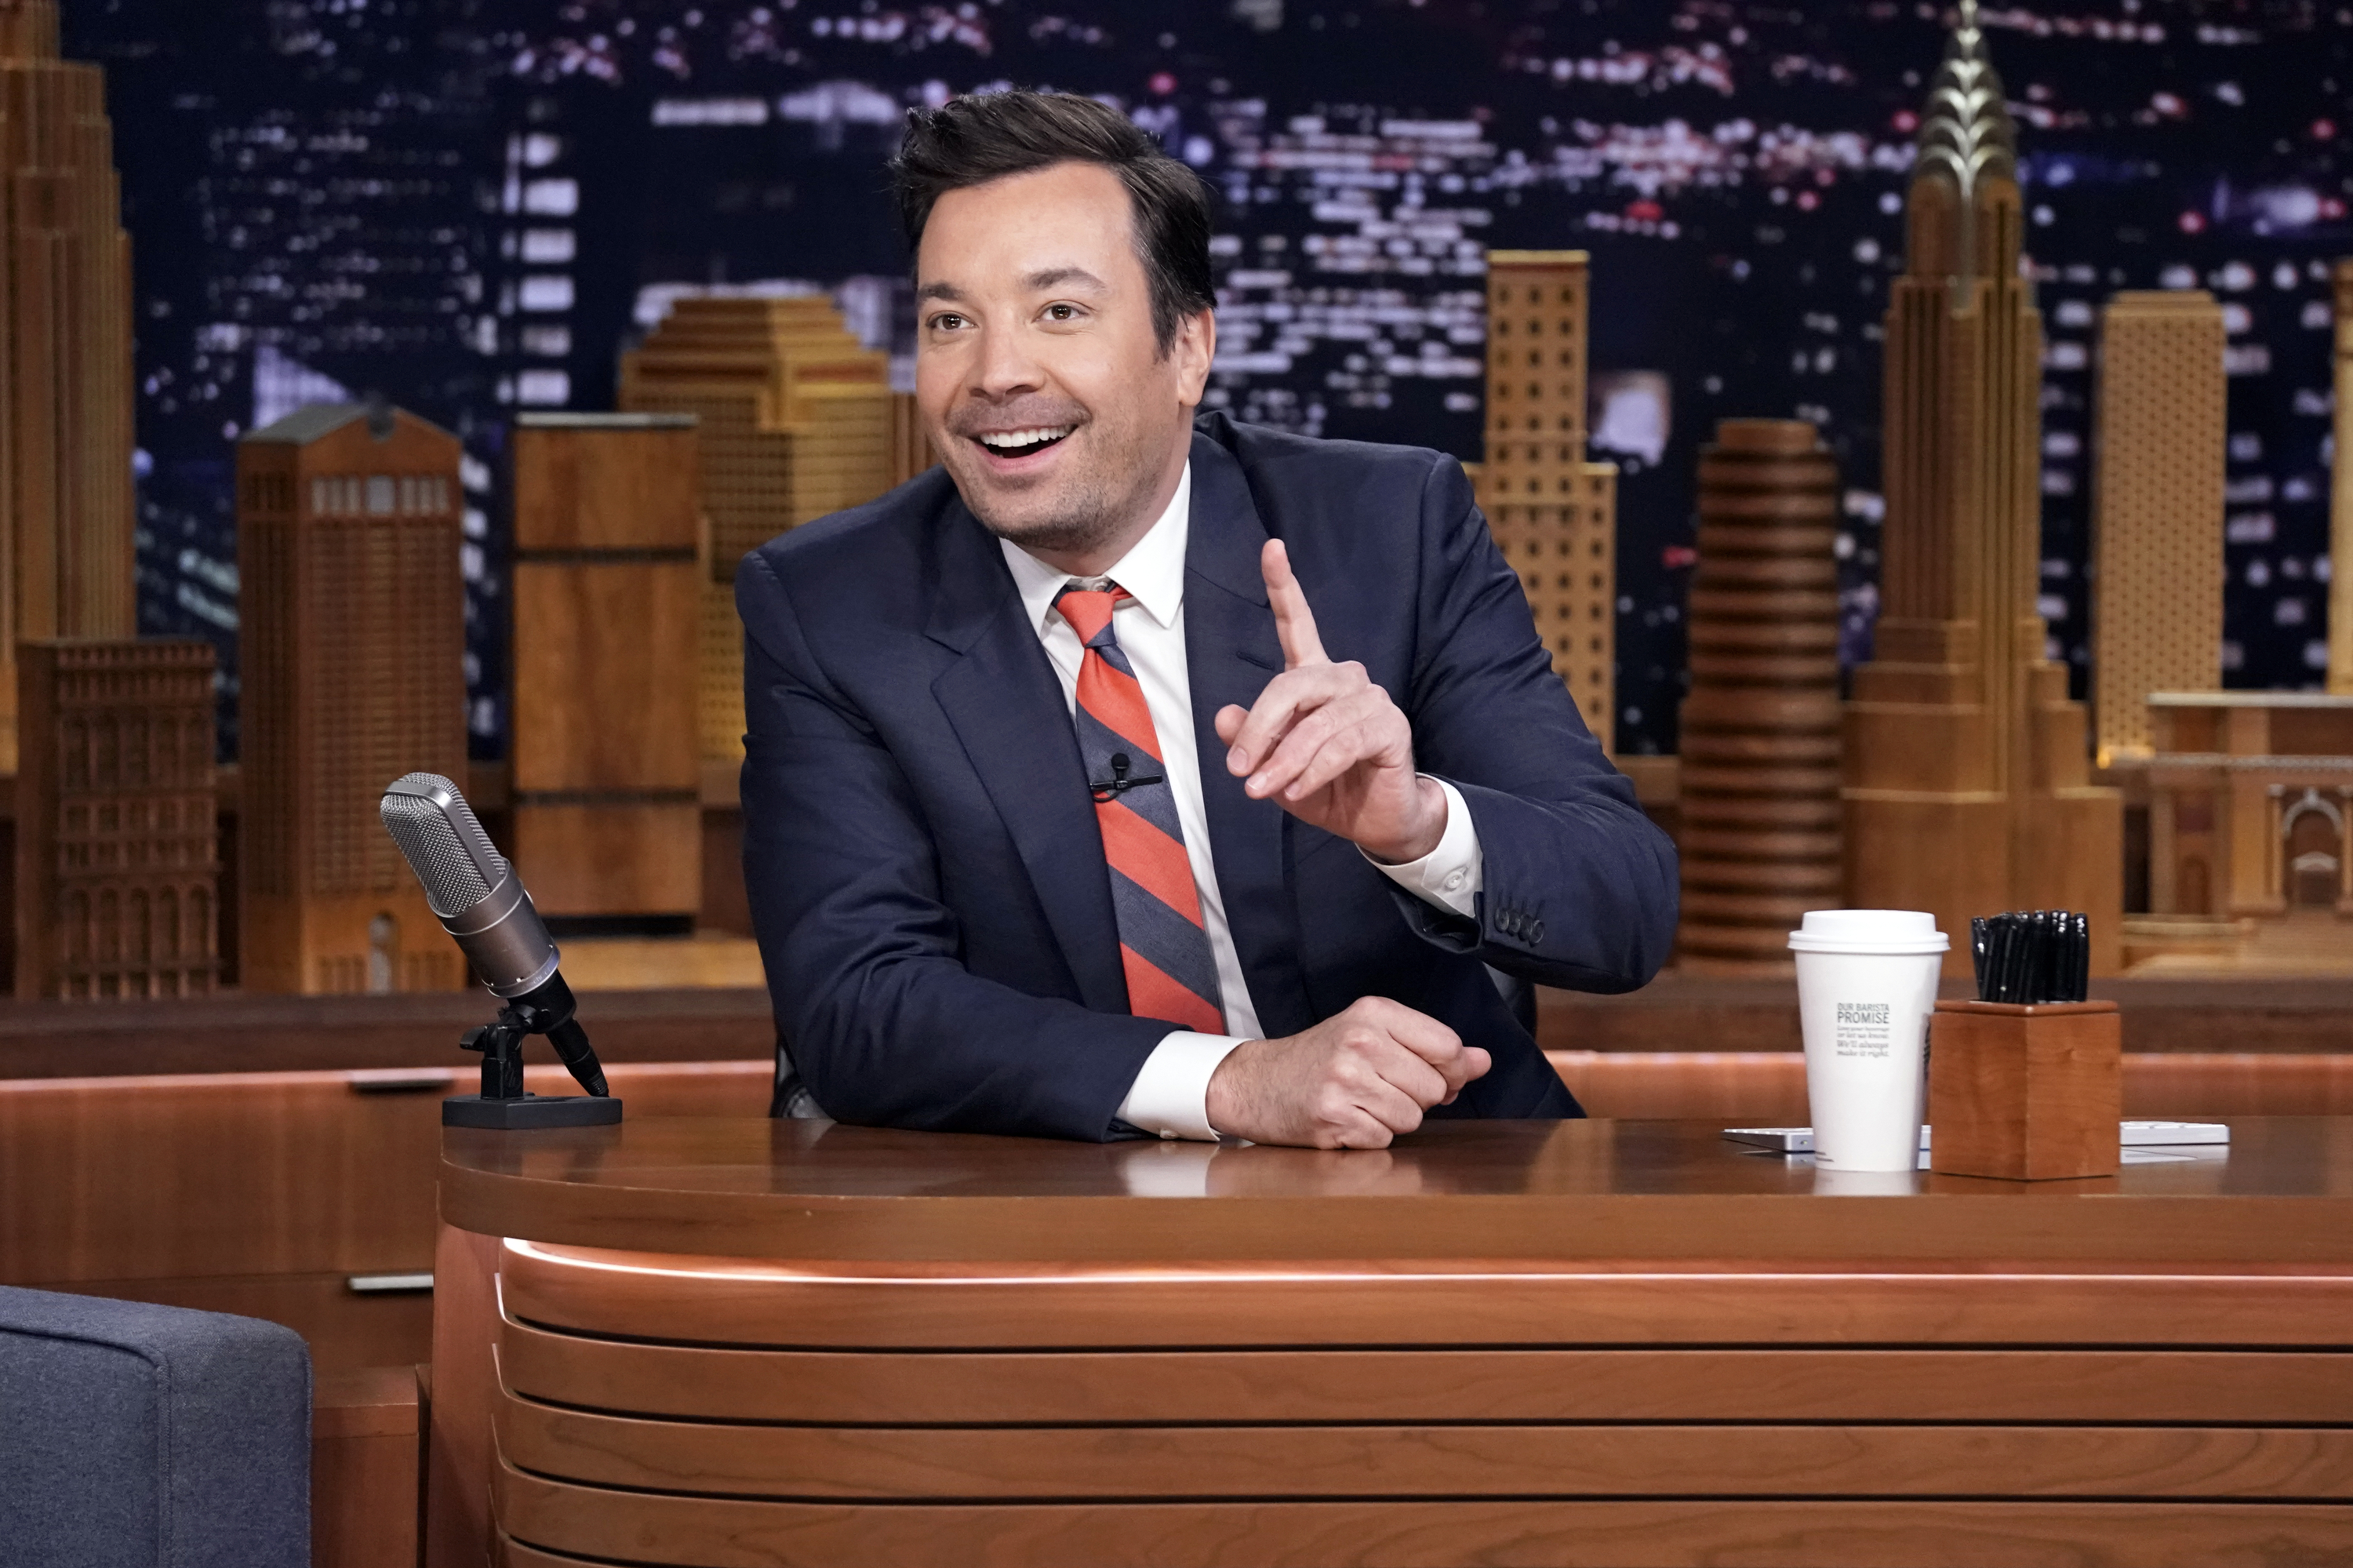 Experience Jimmy Fallon's Best-Selling Children's Books with Puzzles and Flash Card Sets